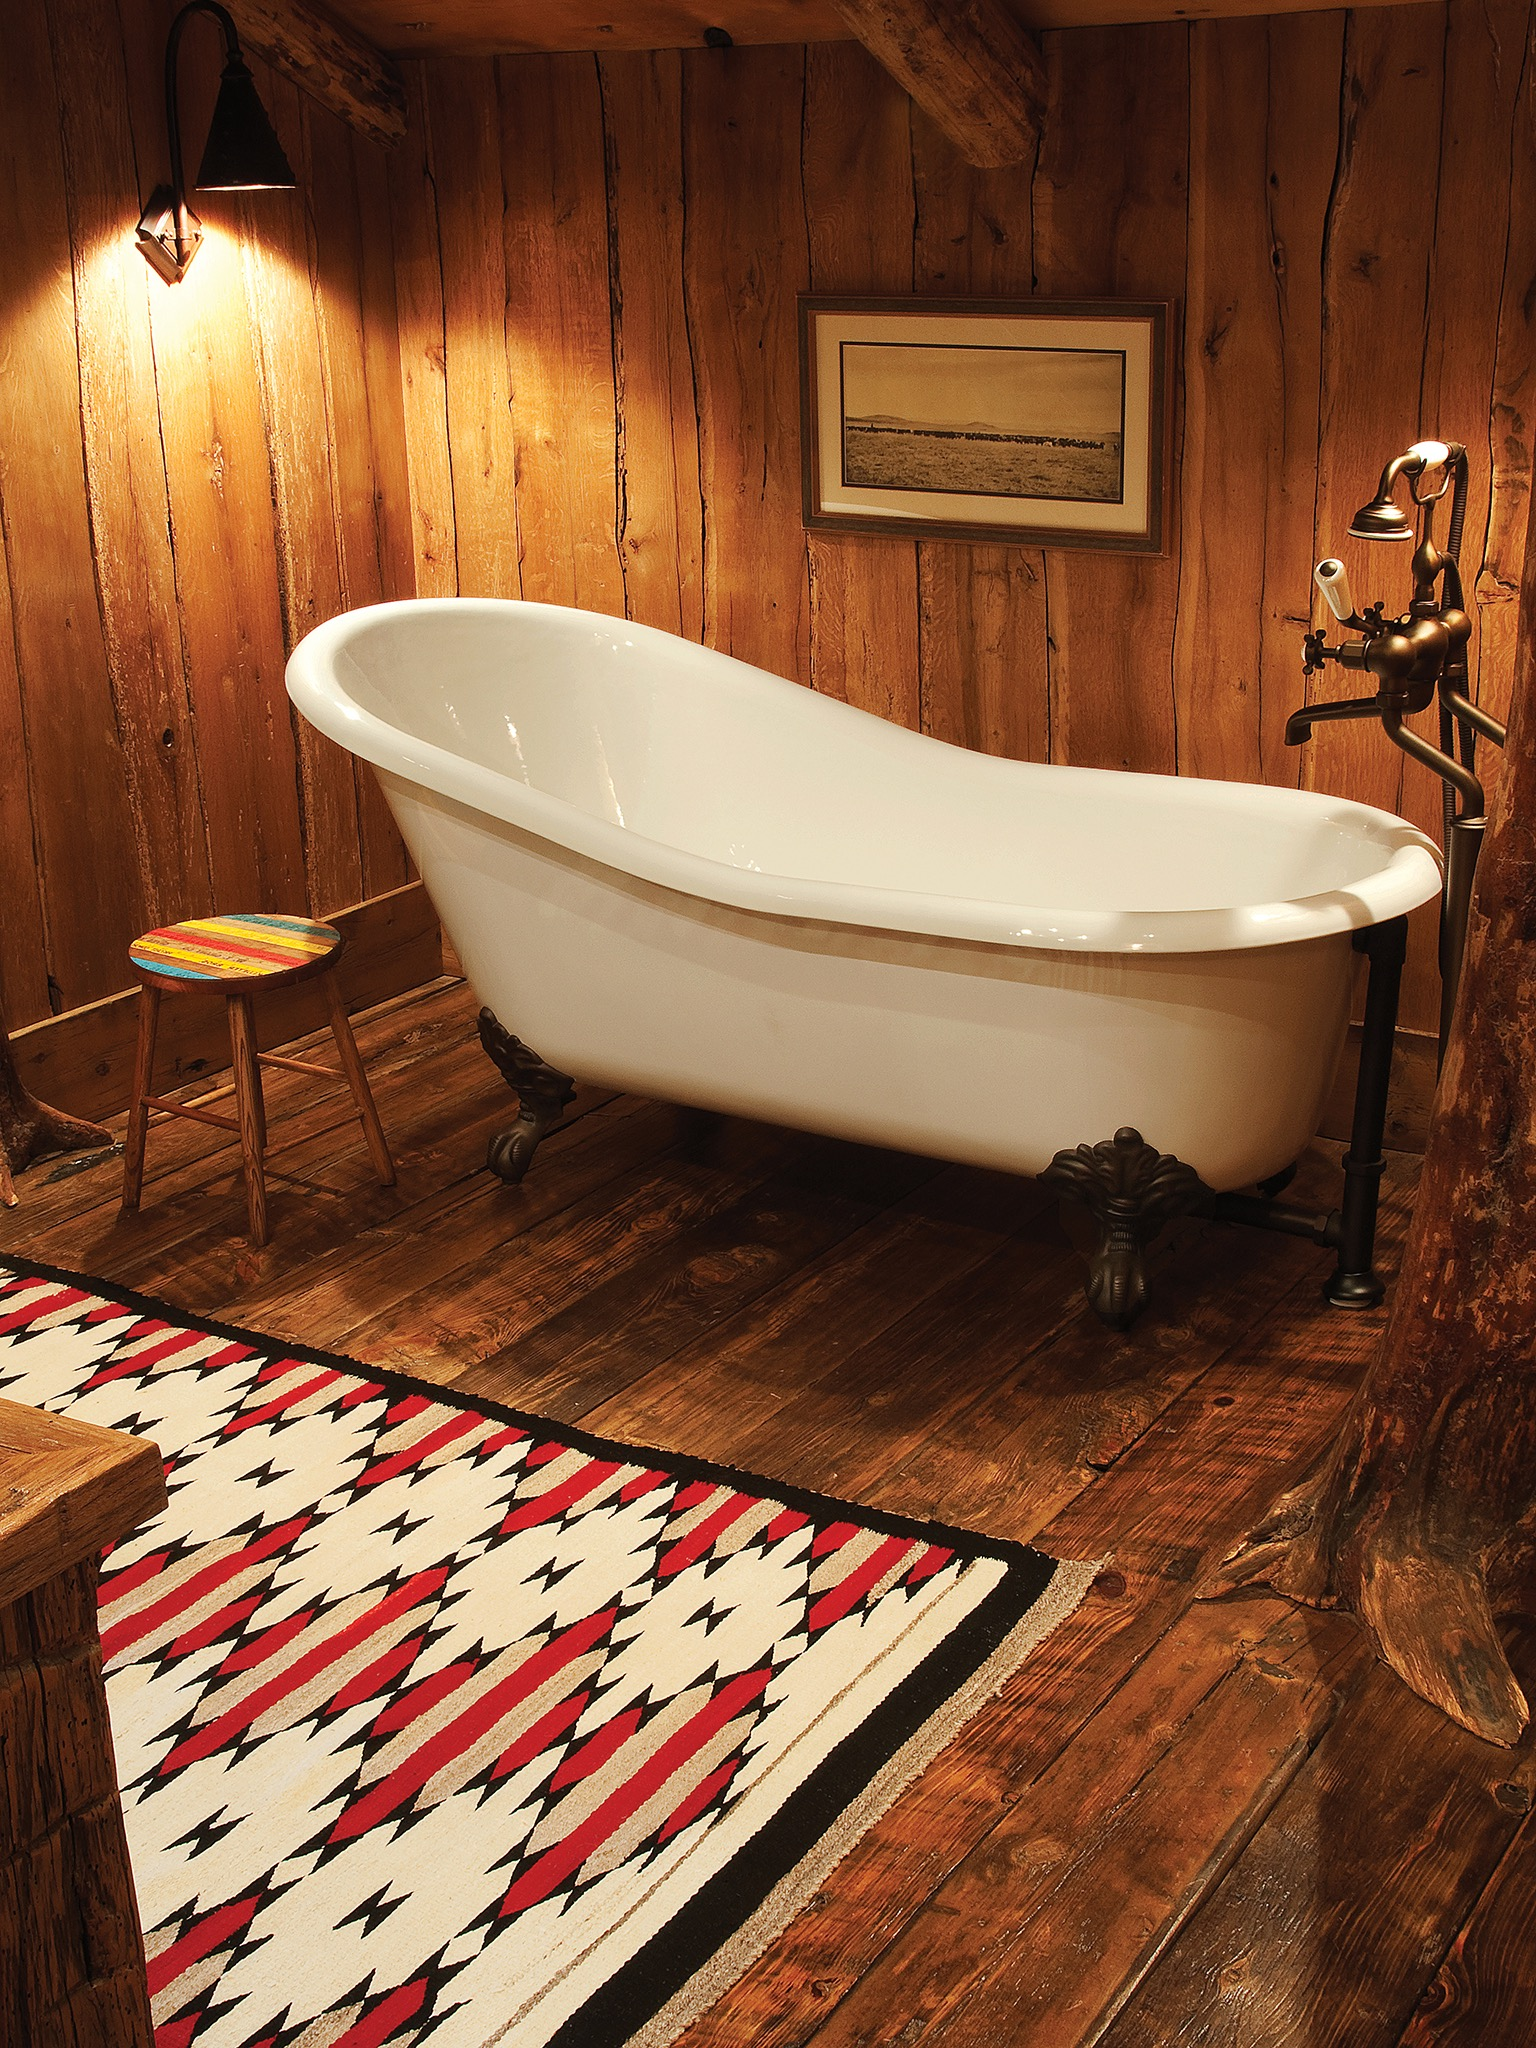 Classic Wooden Bathroom Rustic Interior Design (Image 13 of 29)